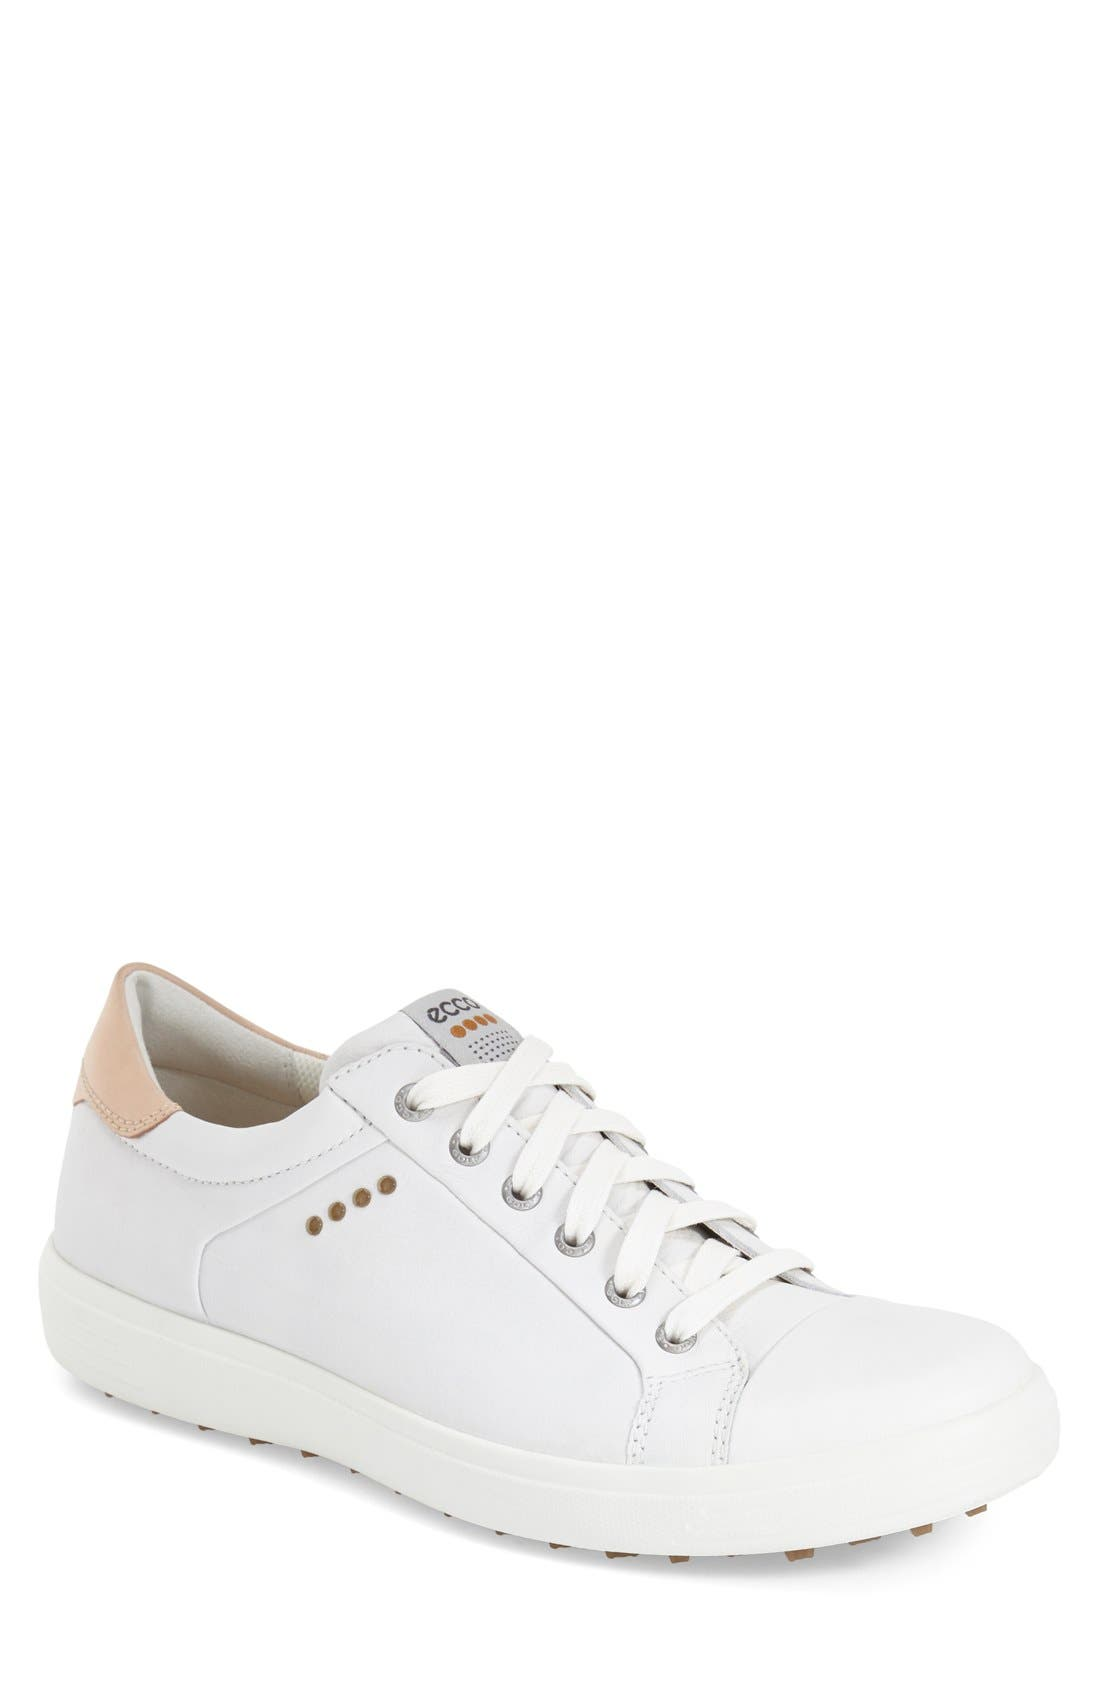 'Casual Hybrid' Golf Shoe,                         Main,                         color, White